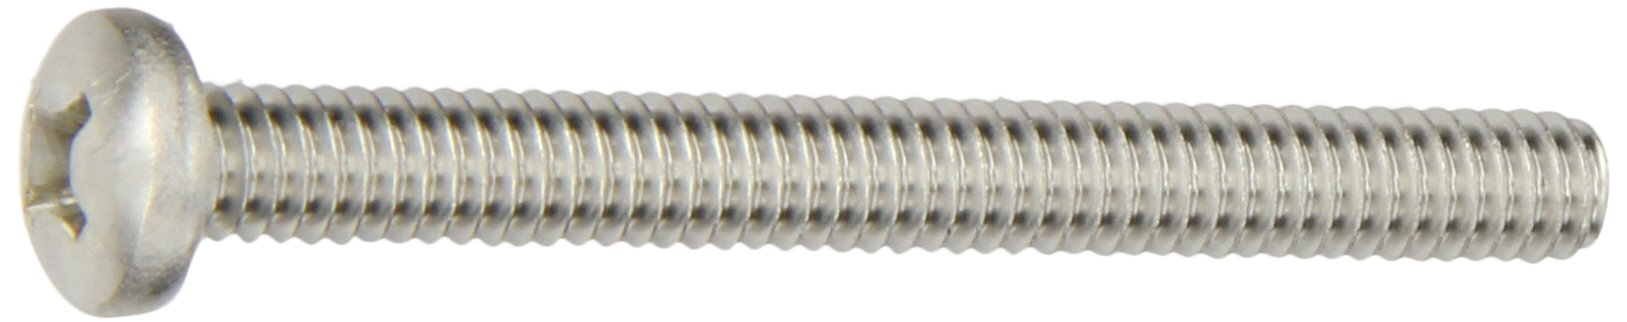 300 Series Stainless Steel Pan Head Machine Screw, Passivated, Meets MS-51957, 3 Phillips Drive, 1/4''-20 Thread Size, 2-1/2'' Length, Fully Threaded, USA Made (Pack of 10) by Small Parts